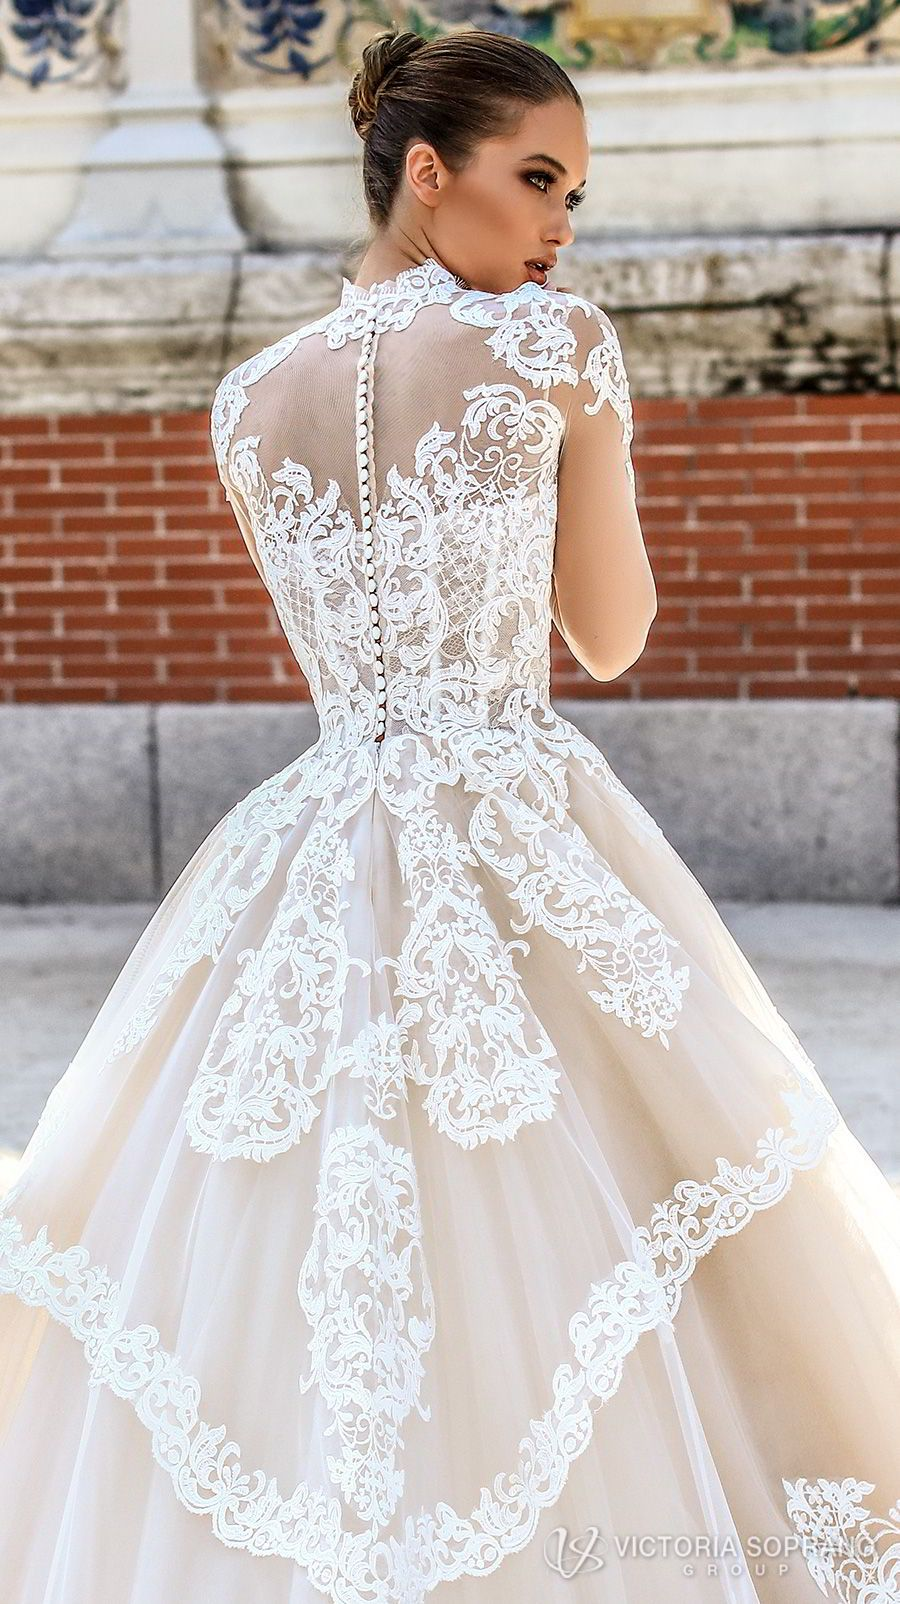 b1bbfa9aa186e victoria soprano 2018 bridal long sleeves illusion high neck sweetheart  neckline heavily embellished bodice princess a line wedding dress sheer  lace back ...